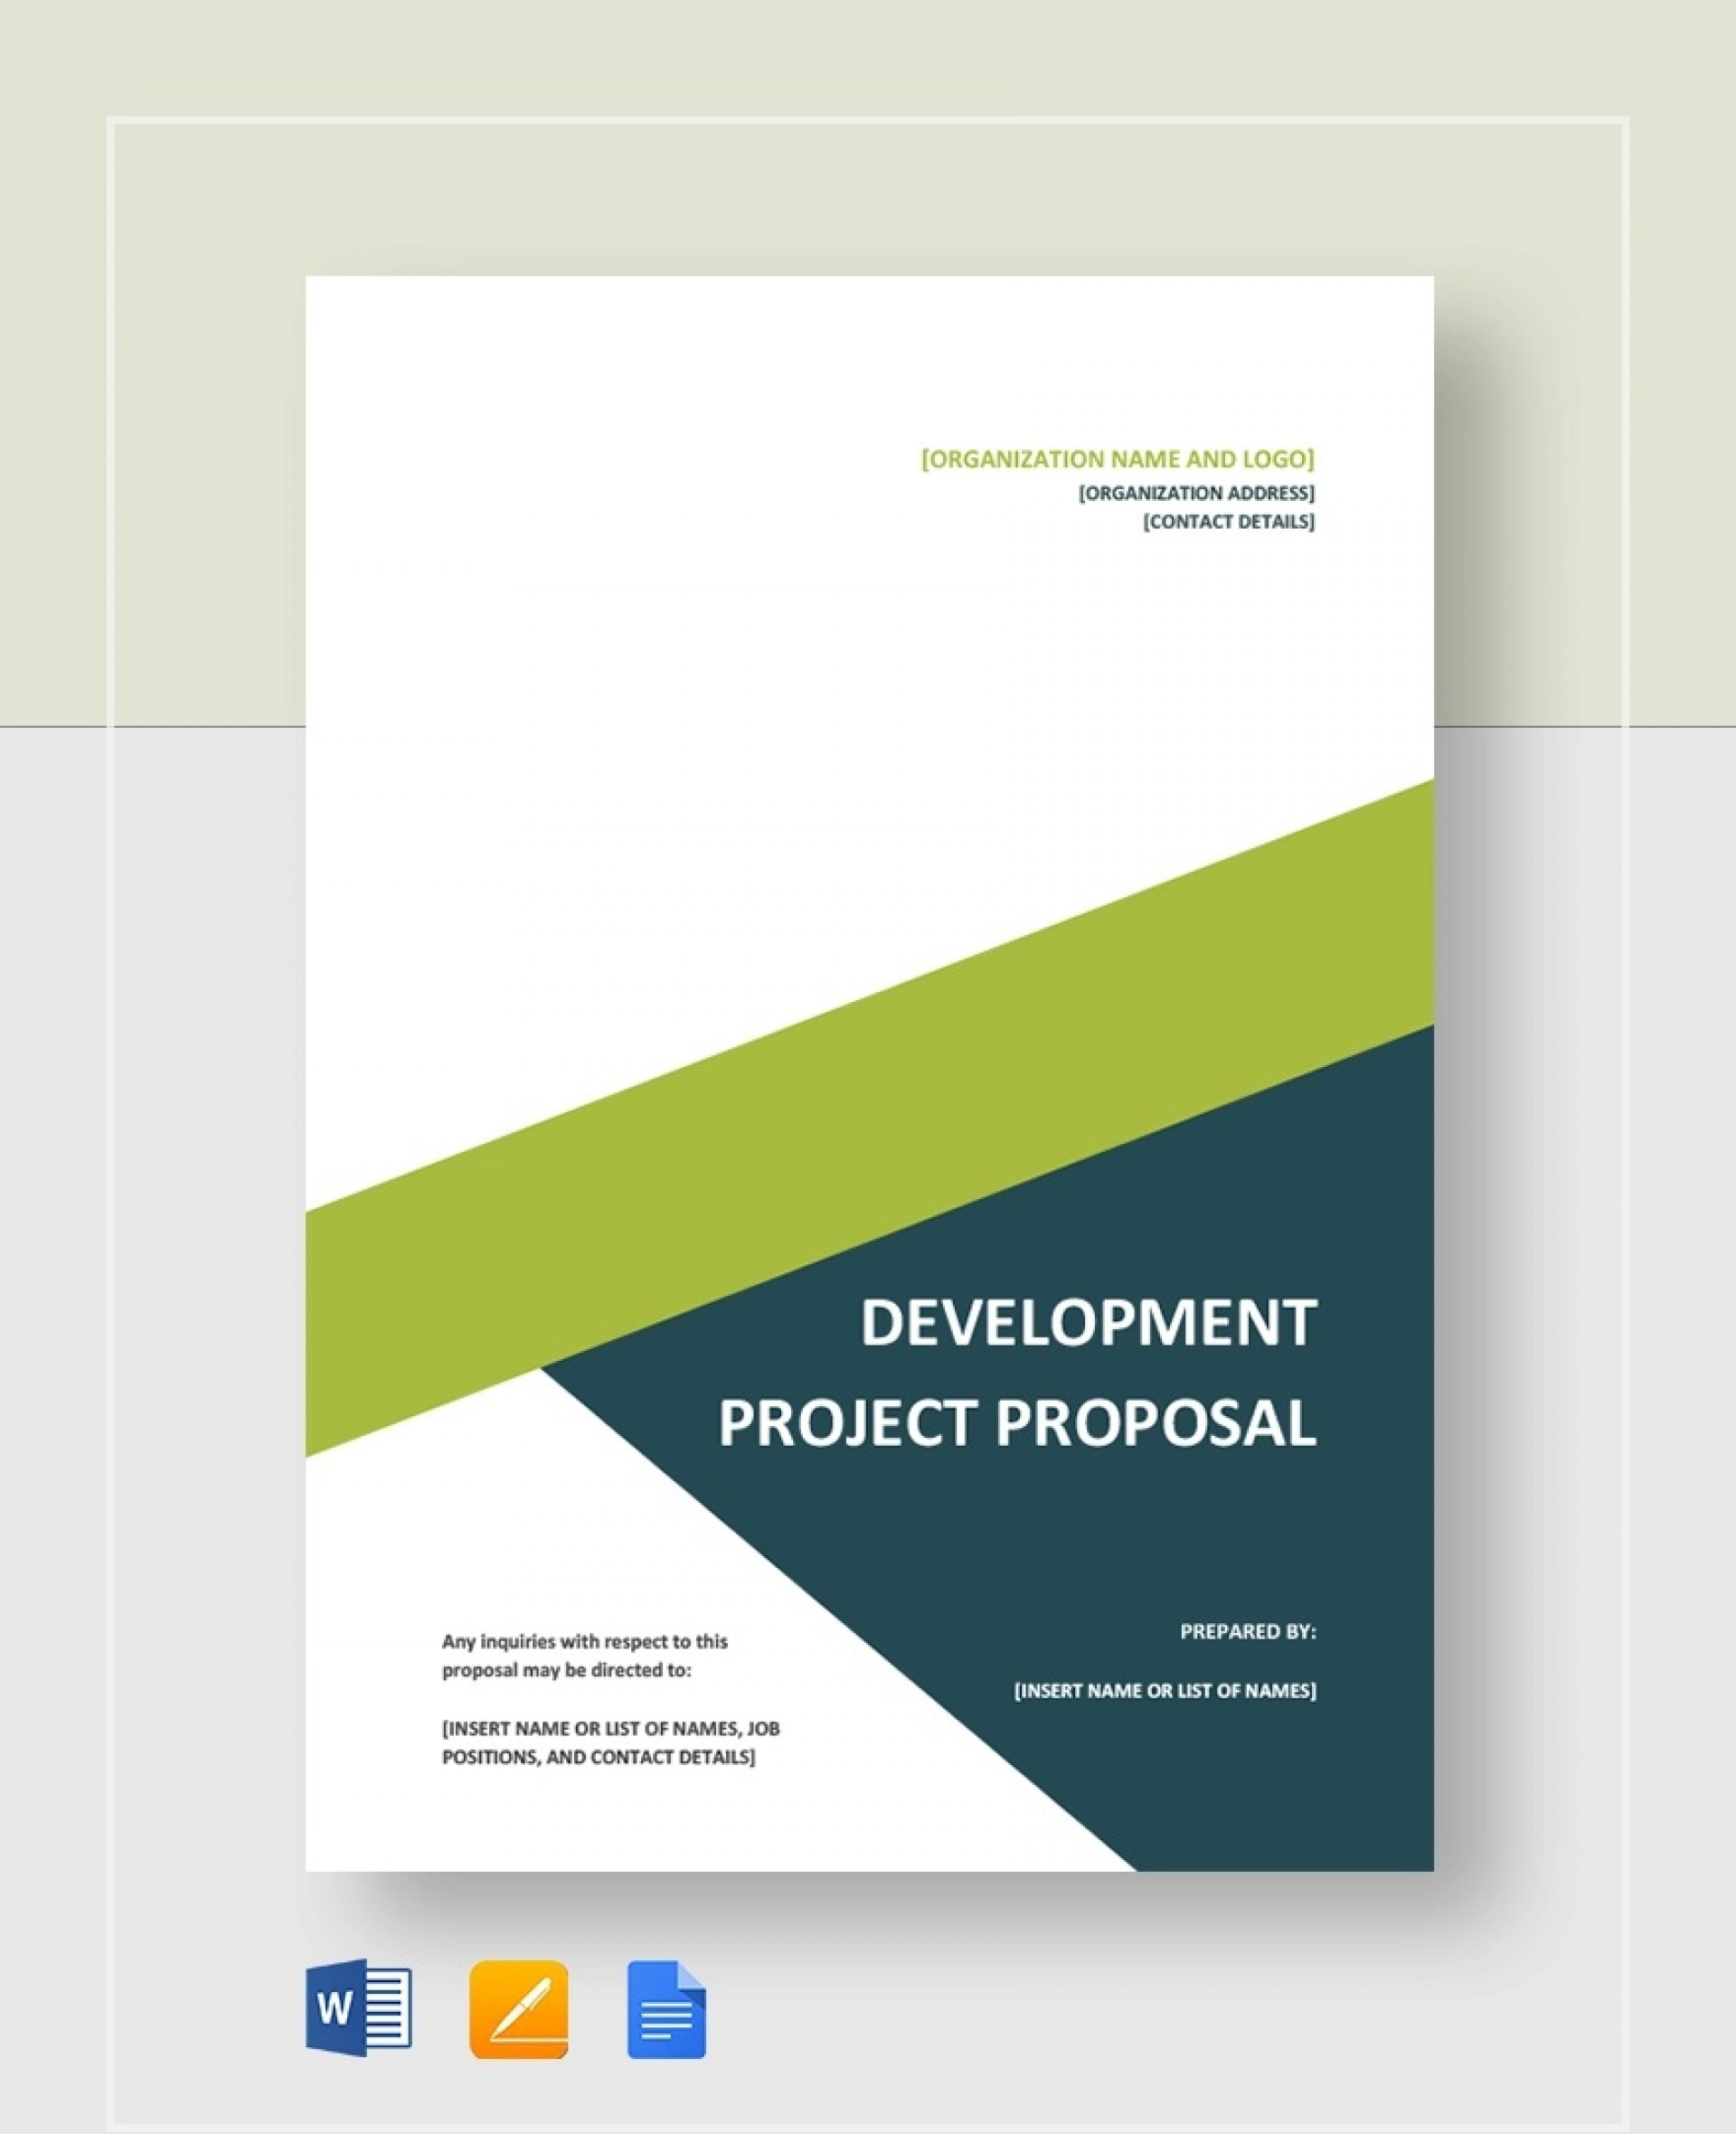 Development Project Proposal Template  Web Design & Powerpoint Sample1920